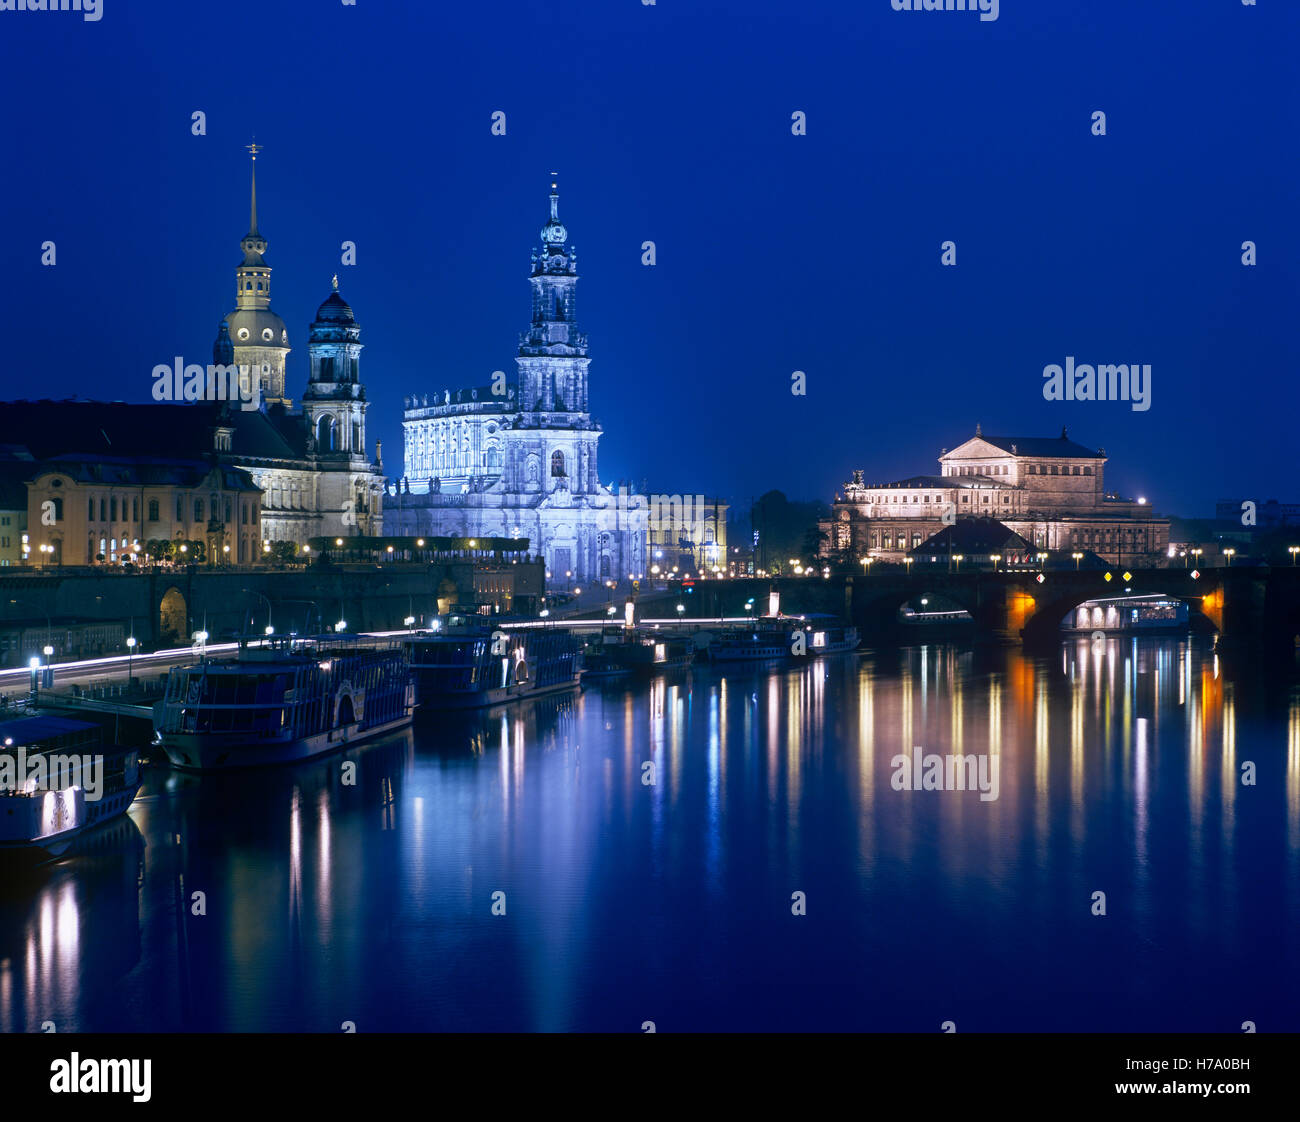 Dresden skyline reflecting in the River Elbe at night, Saxony, Germany - Stock Image